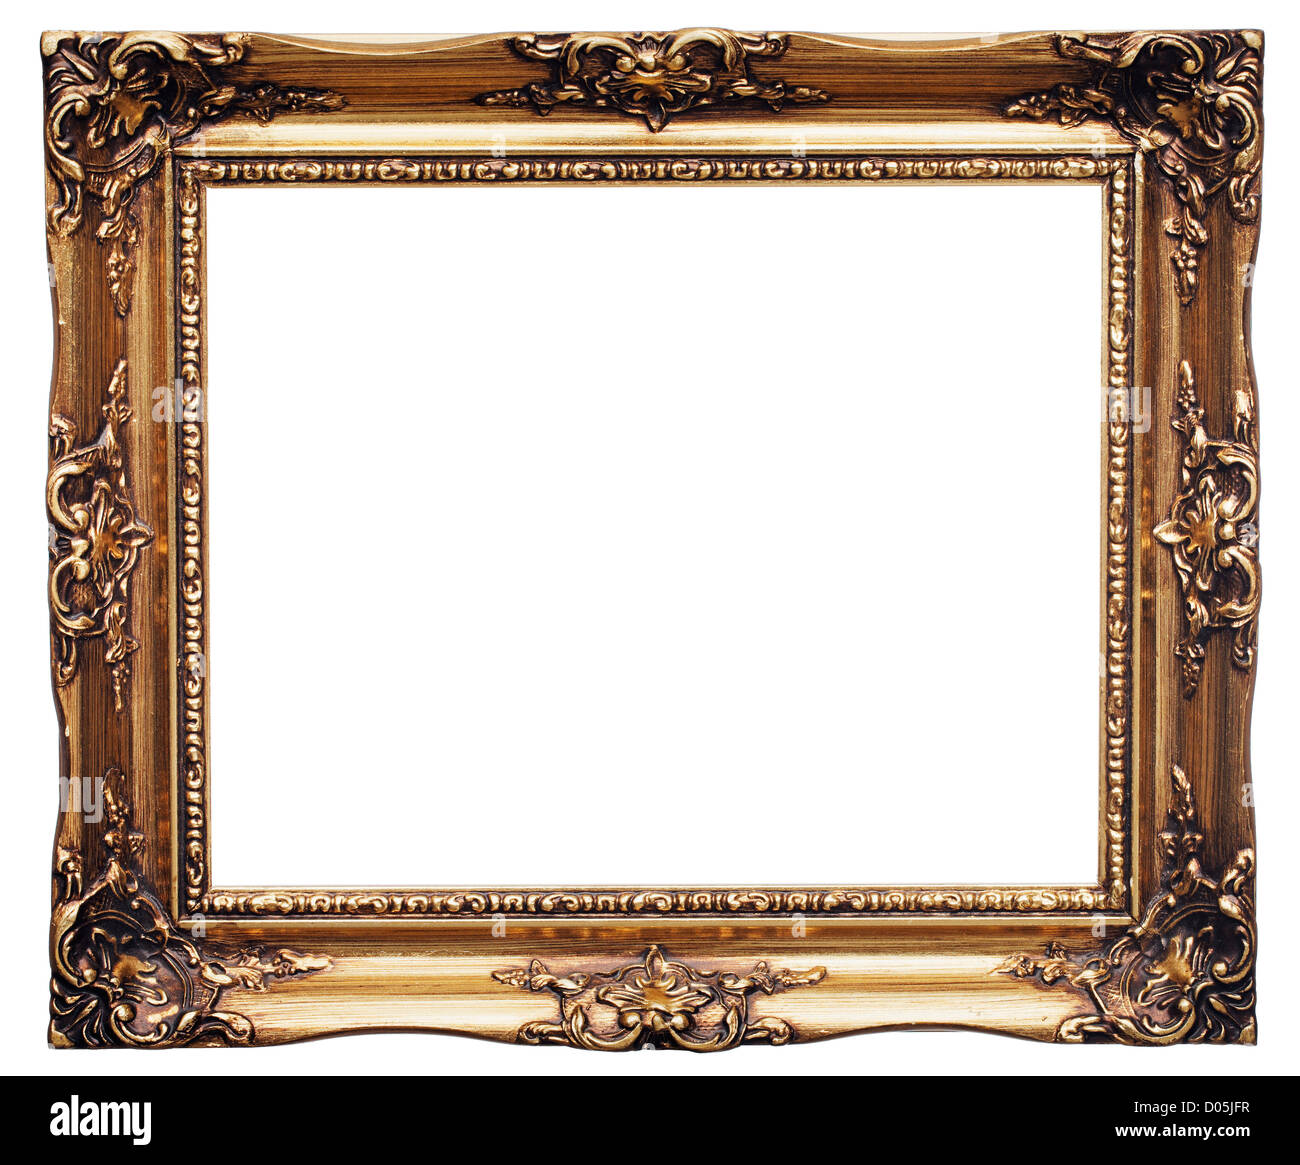 Antique look gold color picture frame isolated on white. - Stock Image